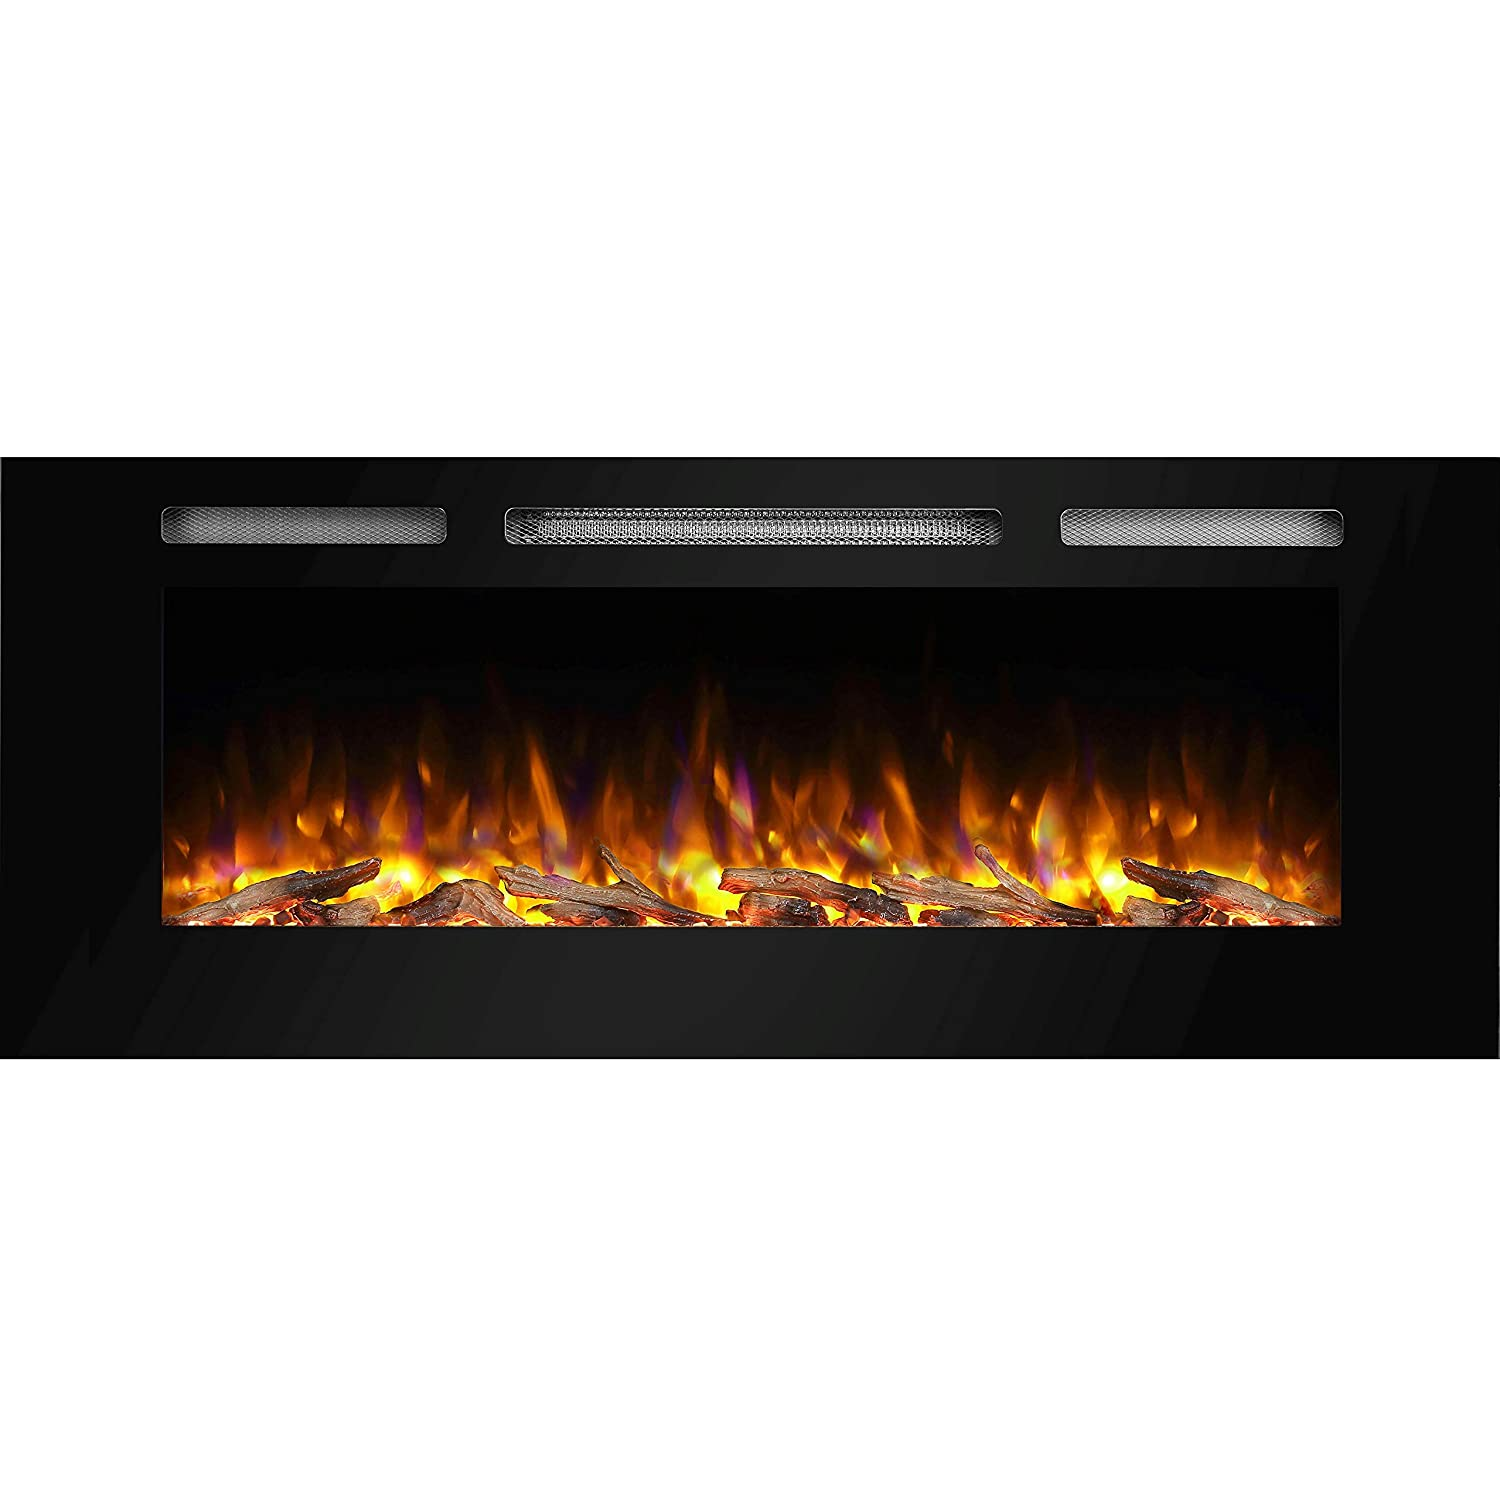 Puraflame Alice 50 Recessed Electric Fireplace Wall Wiring Mounted Fires For 2 X 6 Stud Log Set Crystal 1500w Heater Black Home Kitchen